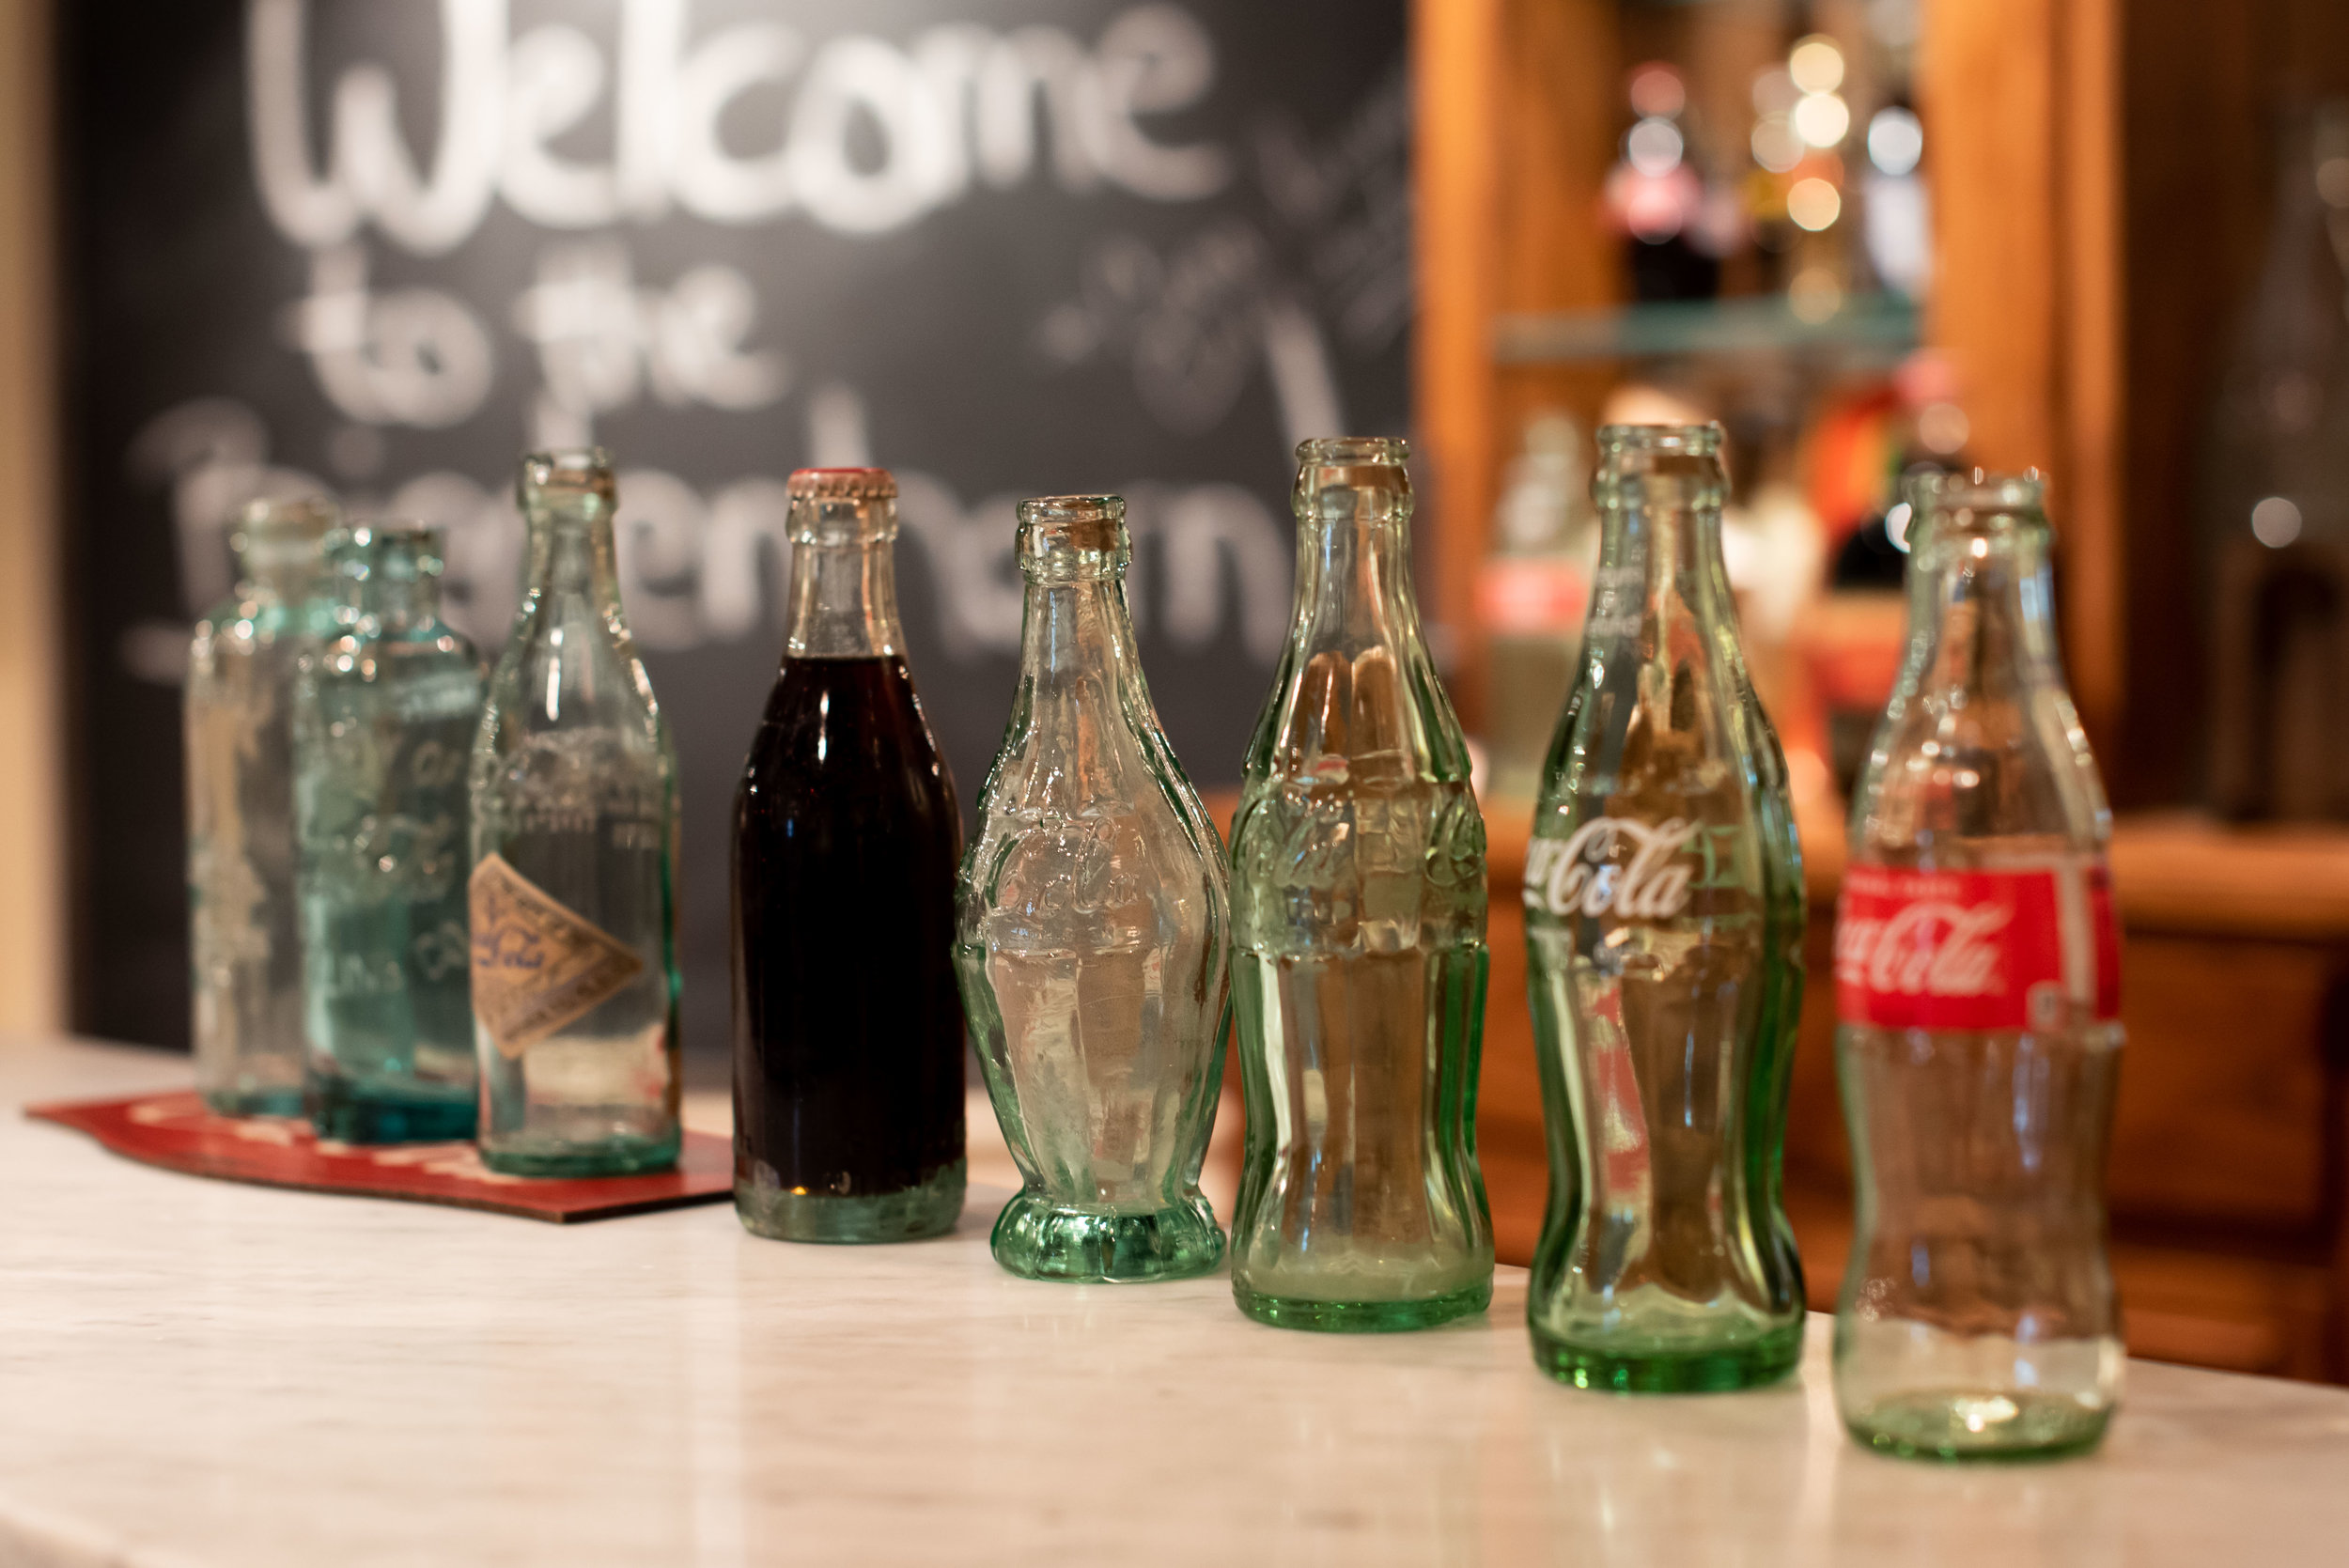 Coke bottles through the years.